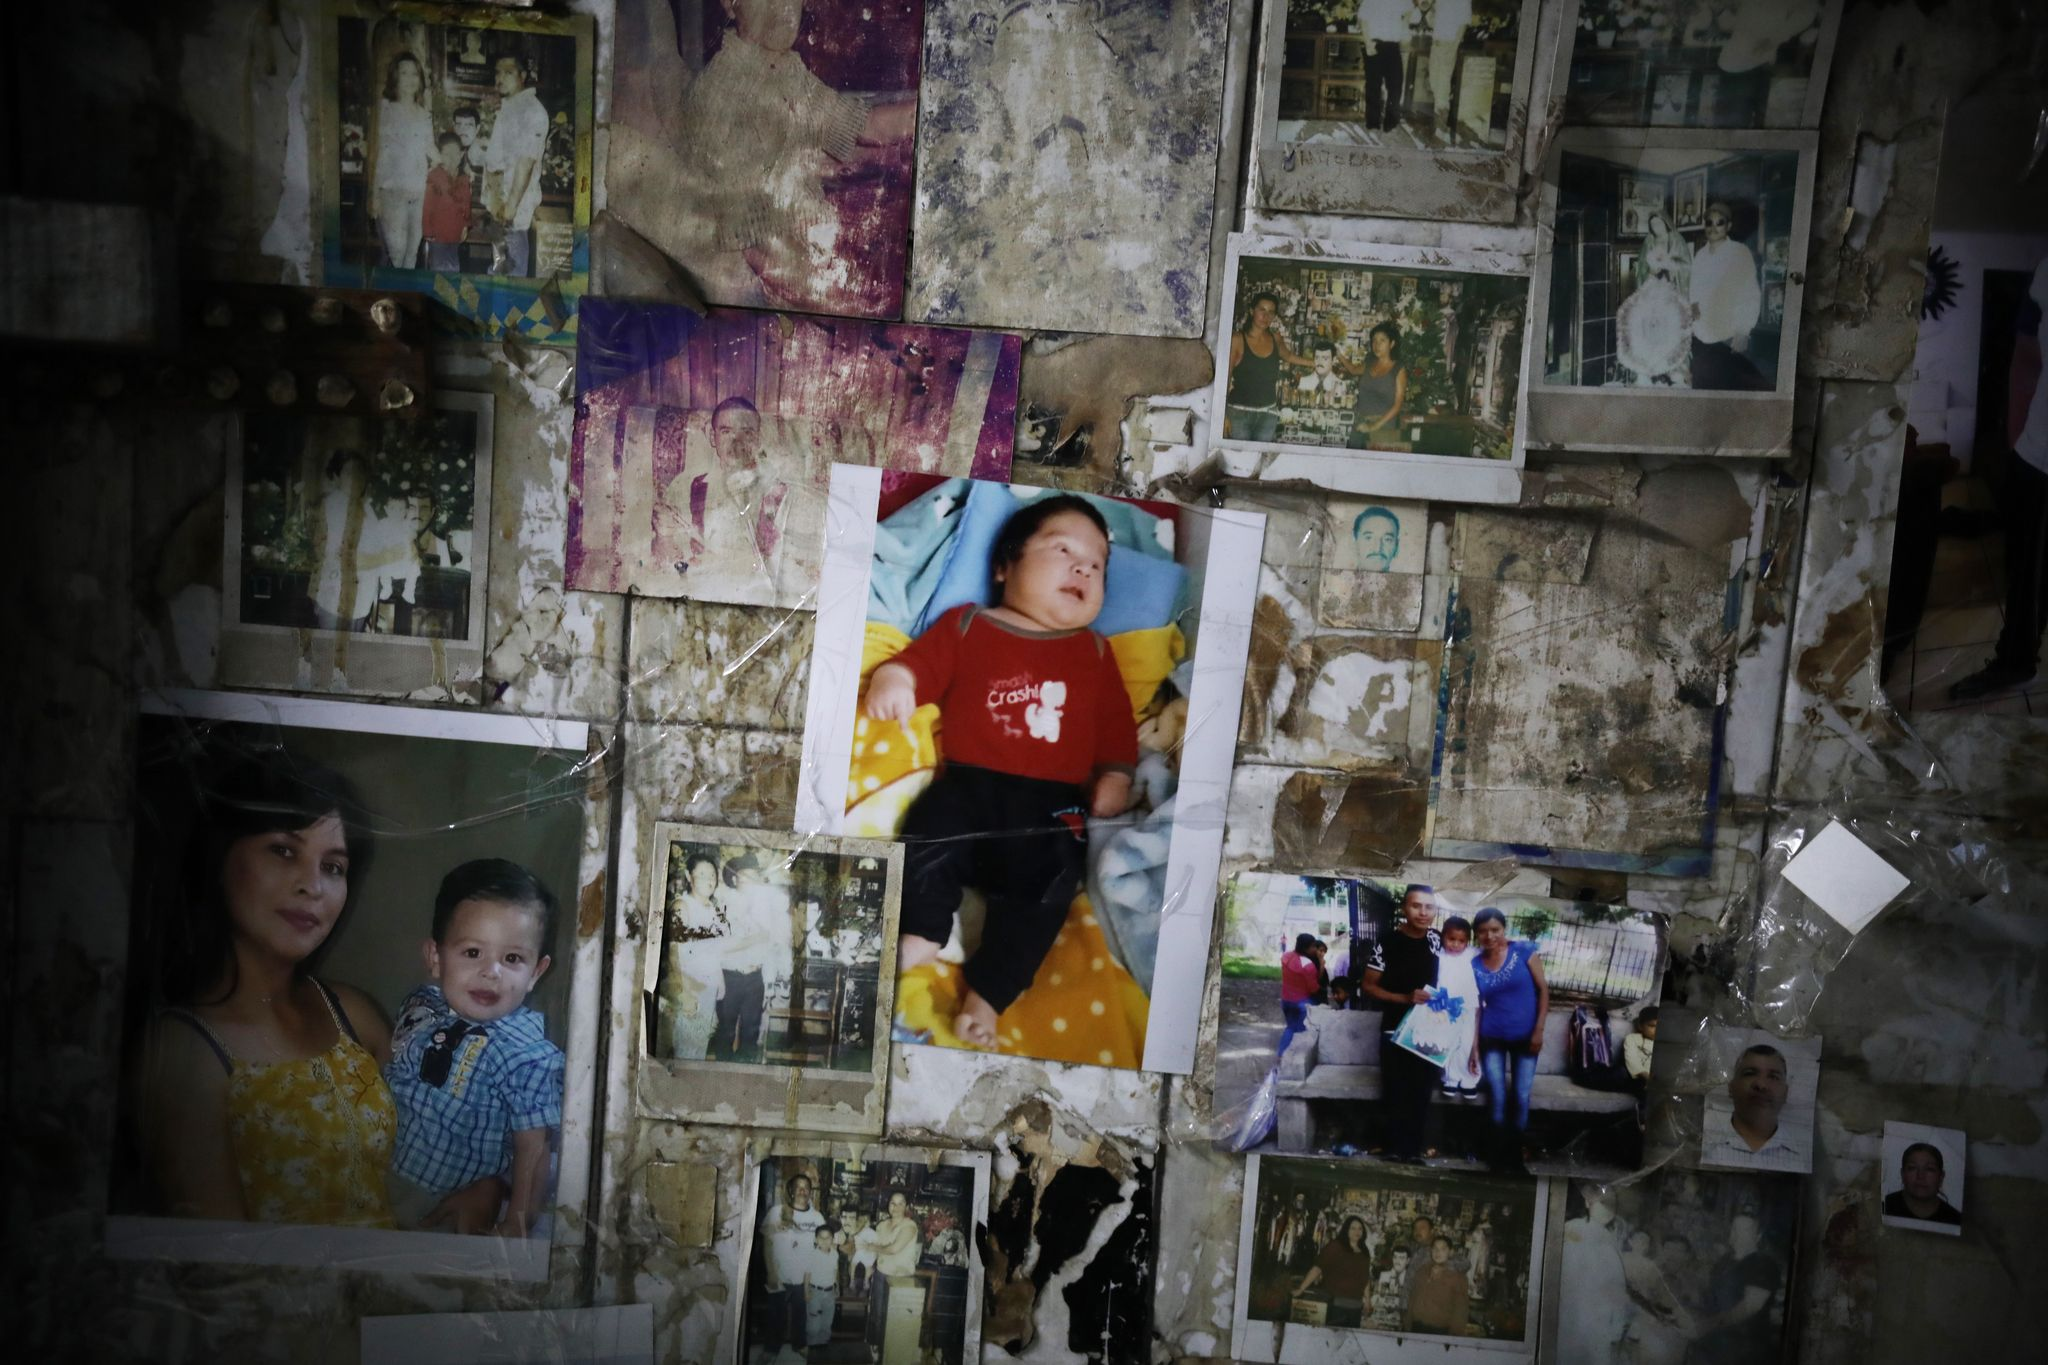 Narcos paste pictures of loved ones to the walls of the Malverde shrine to ask him to protect those still living, and to bless those already dead.